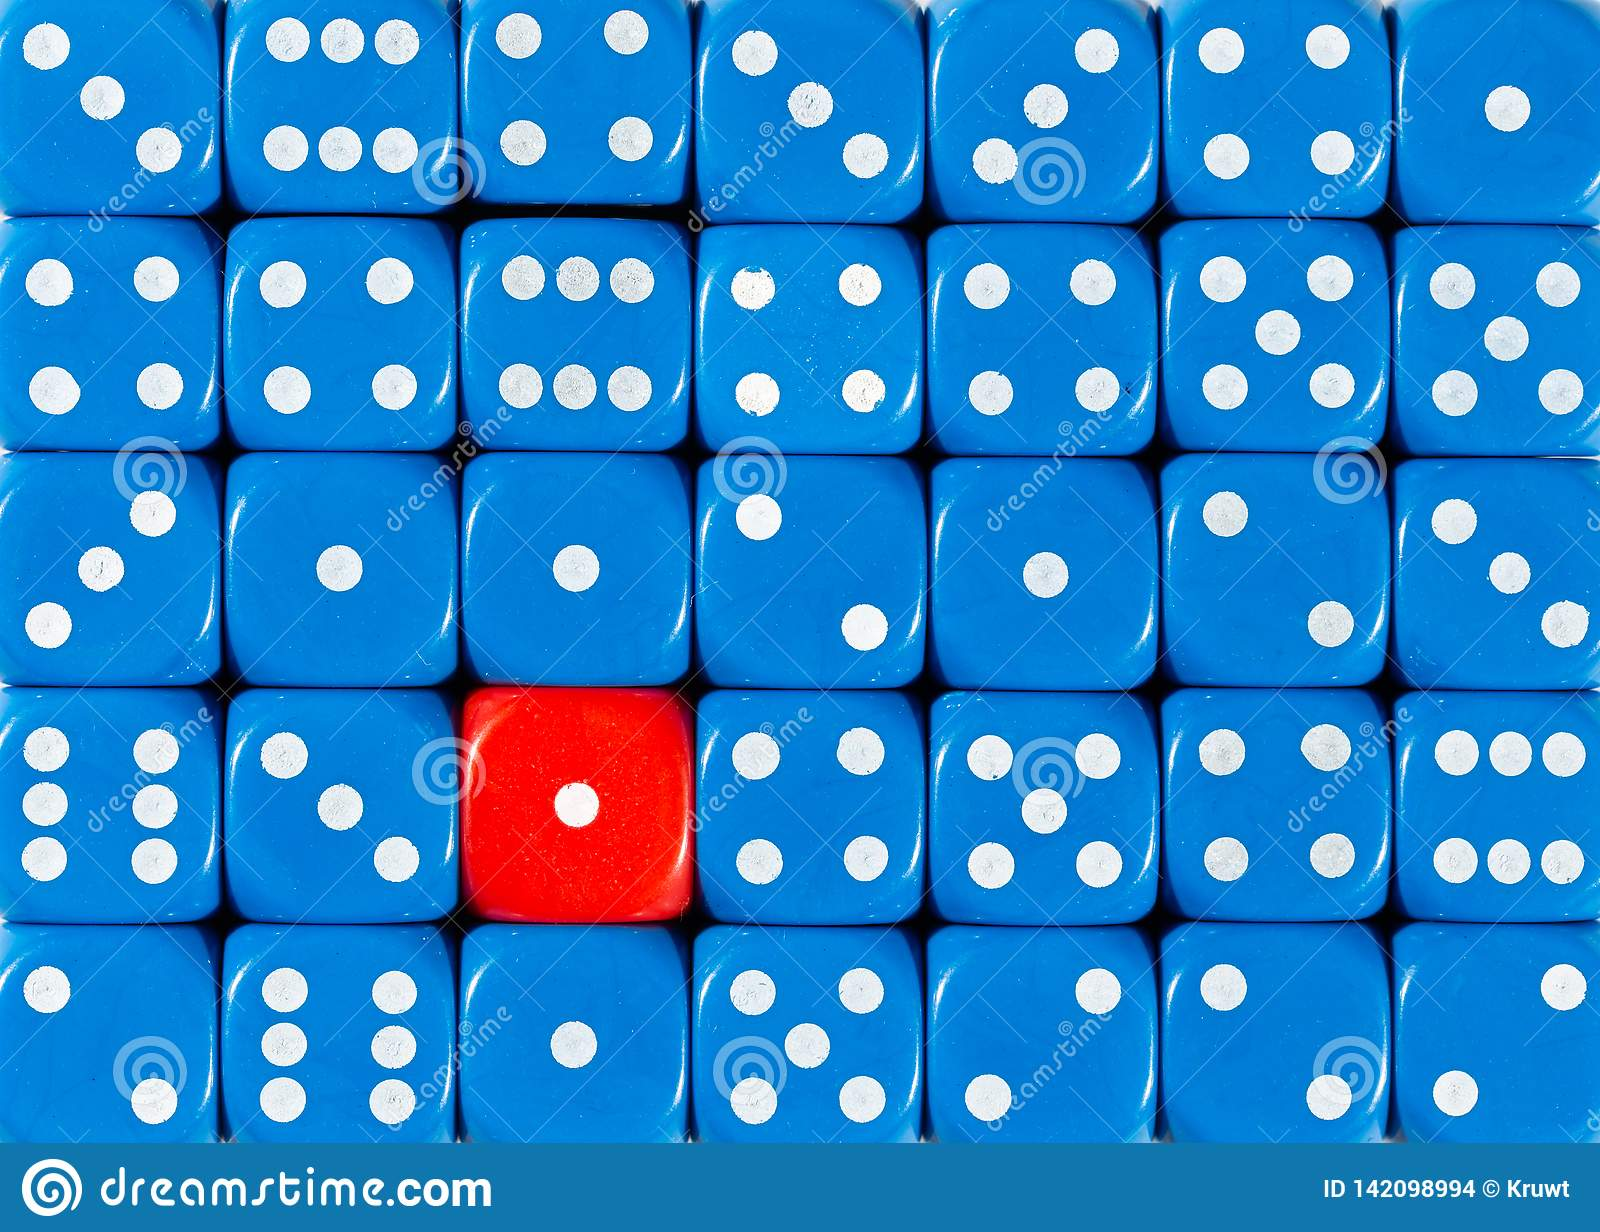 Background of random ordered blue dices with one red cube